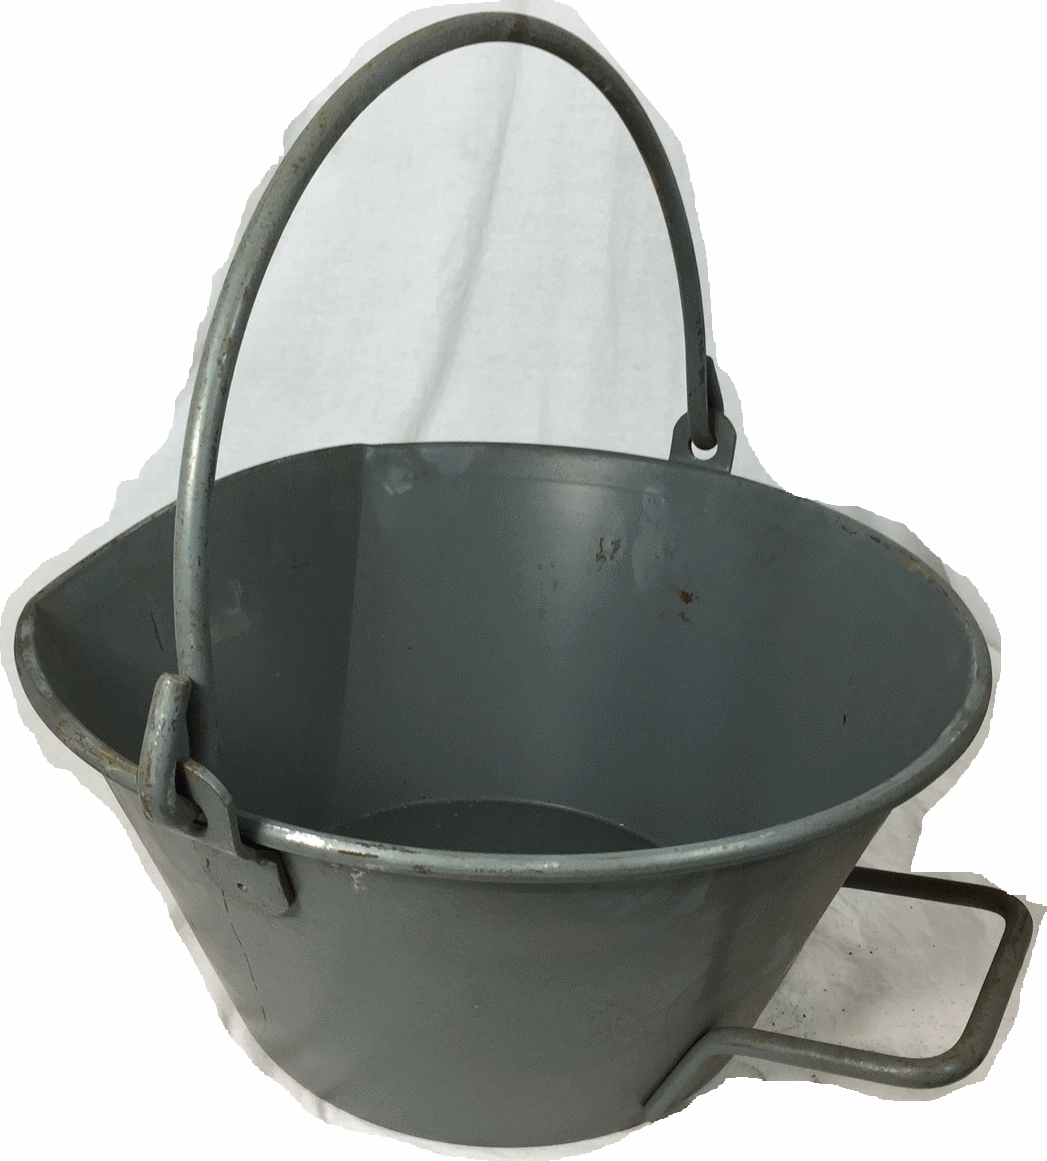 HEAVY DUTY Swiss army surplus all metal 12 litre bucket with handle